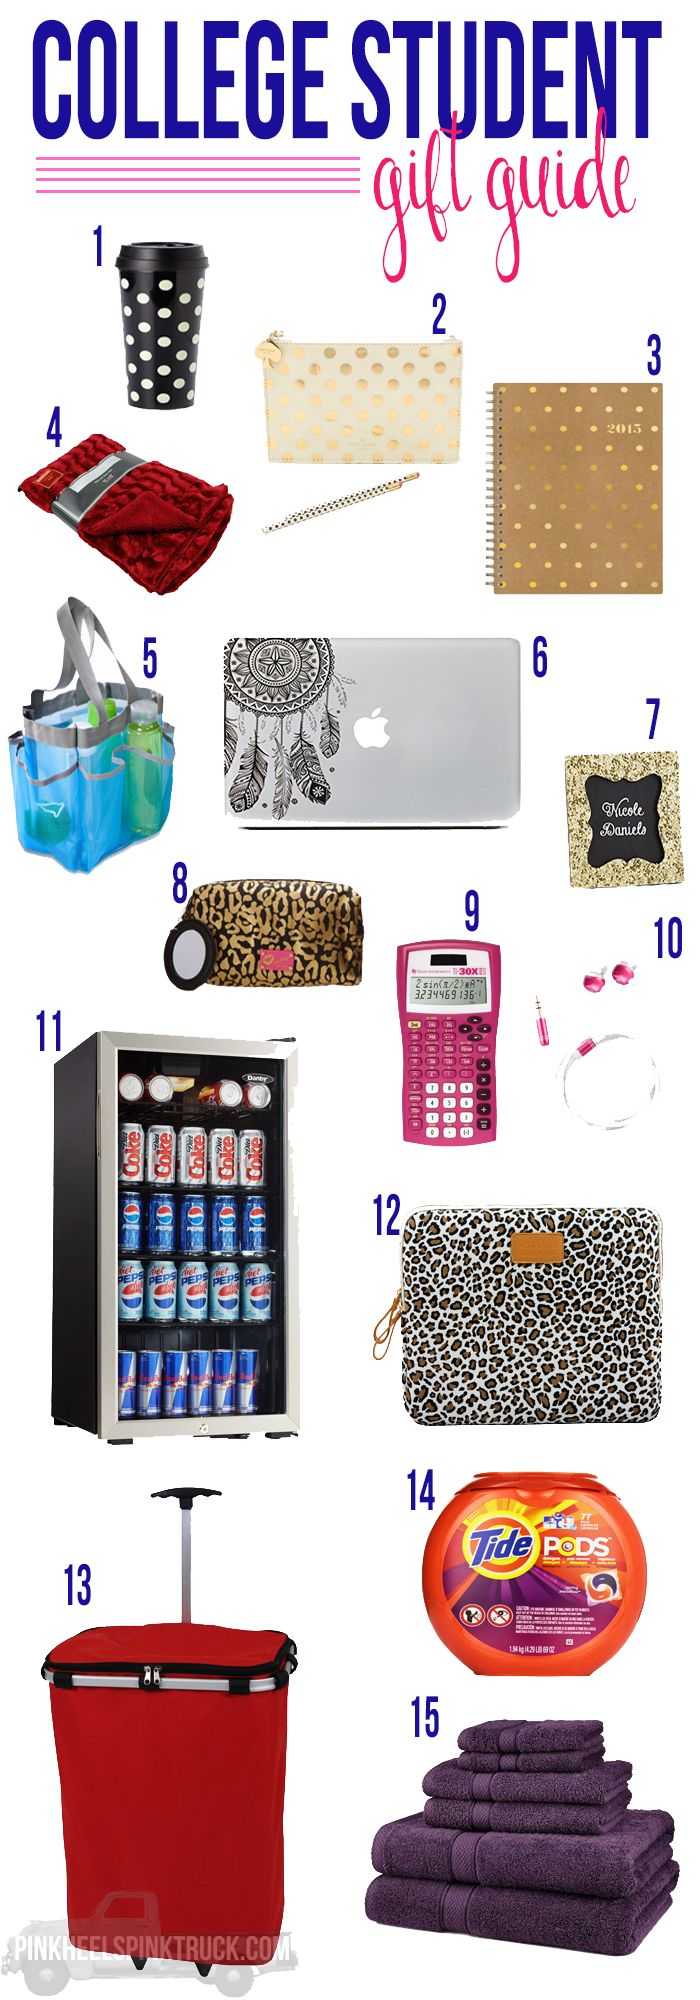 Have a High School Graduate in your life? Looking for a gift idea for a college student? Check out this College Student Gift Guide!